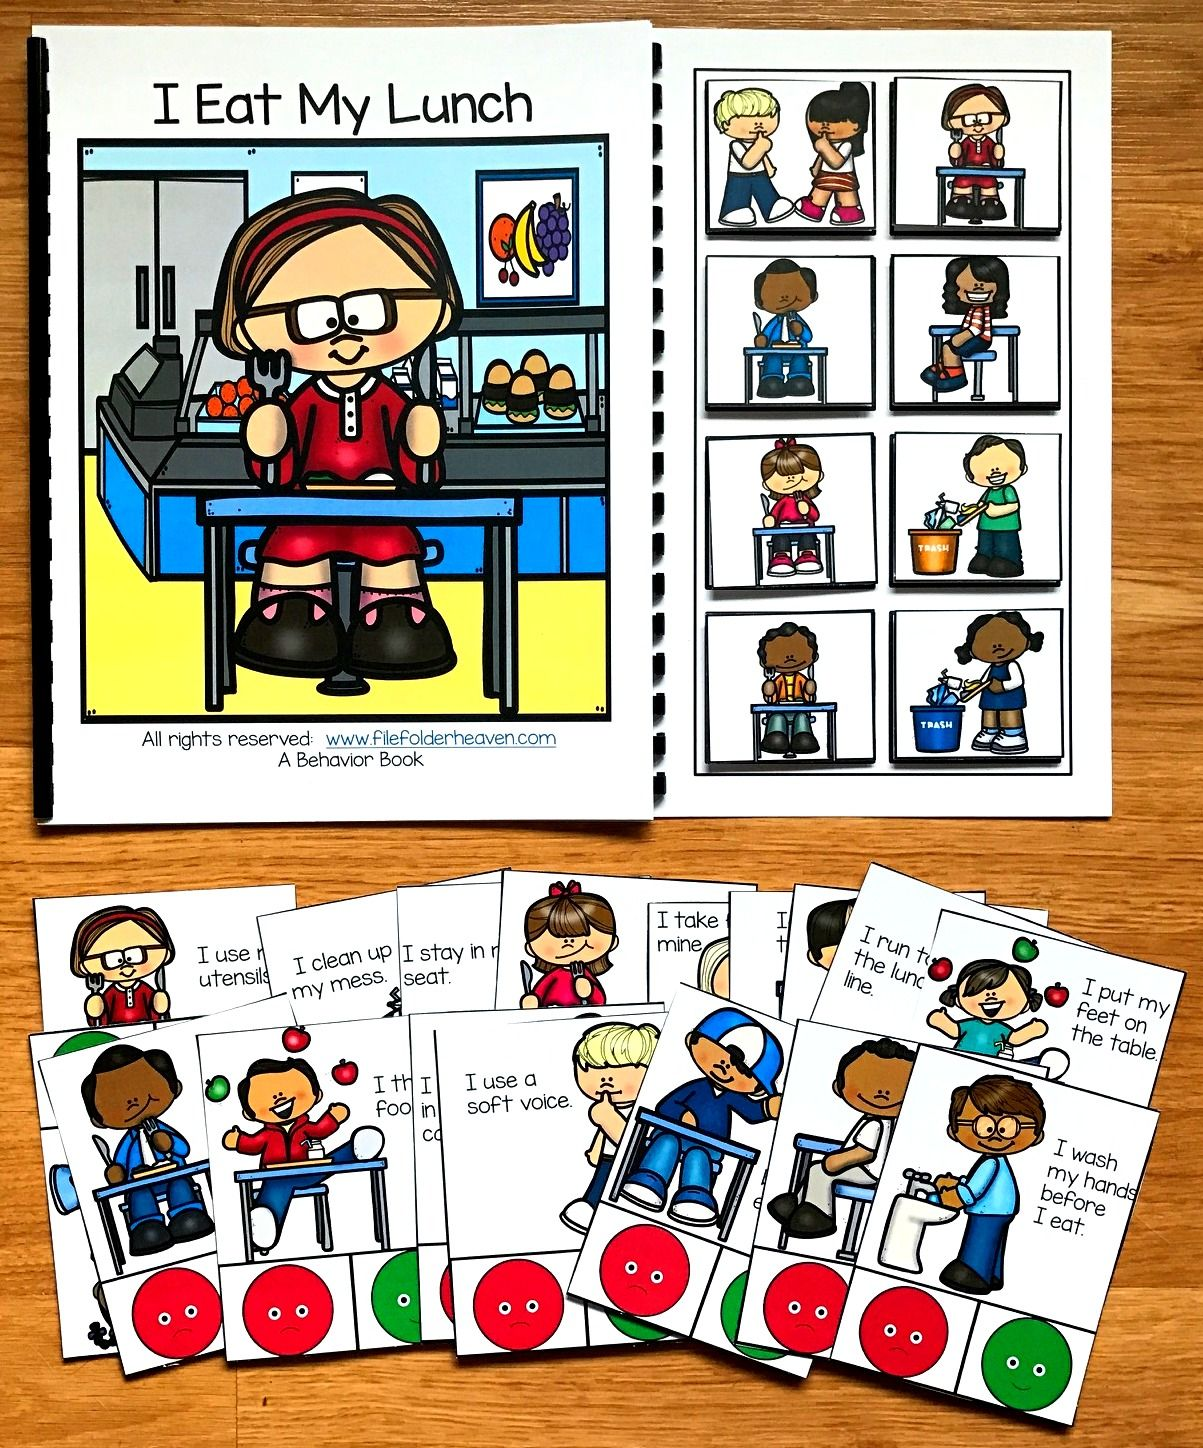 Cafeteria clipart clean. Behavior adapted book and